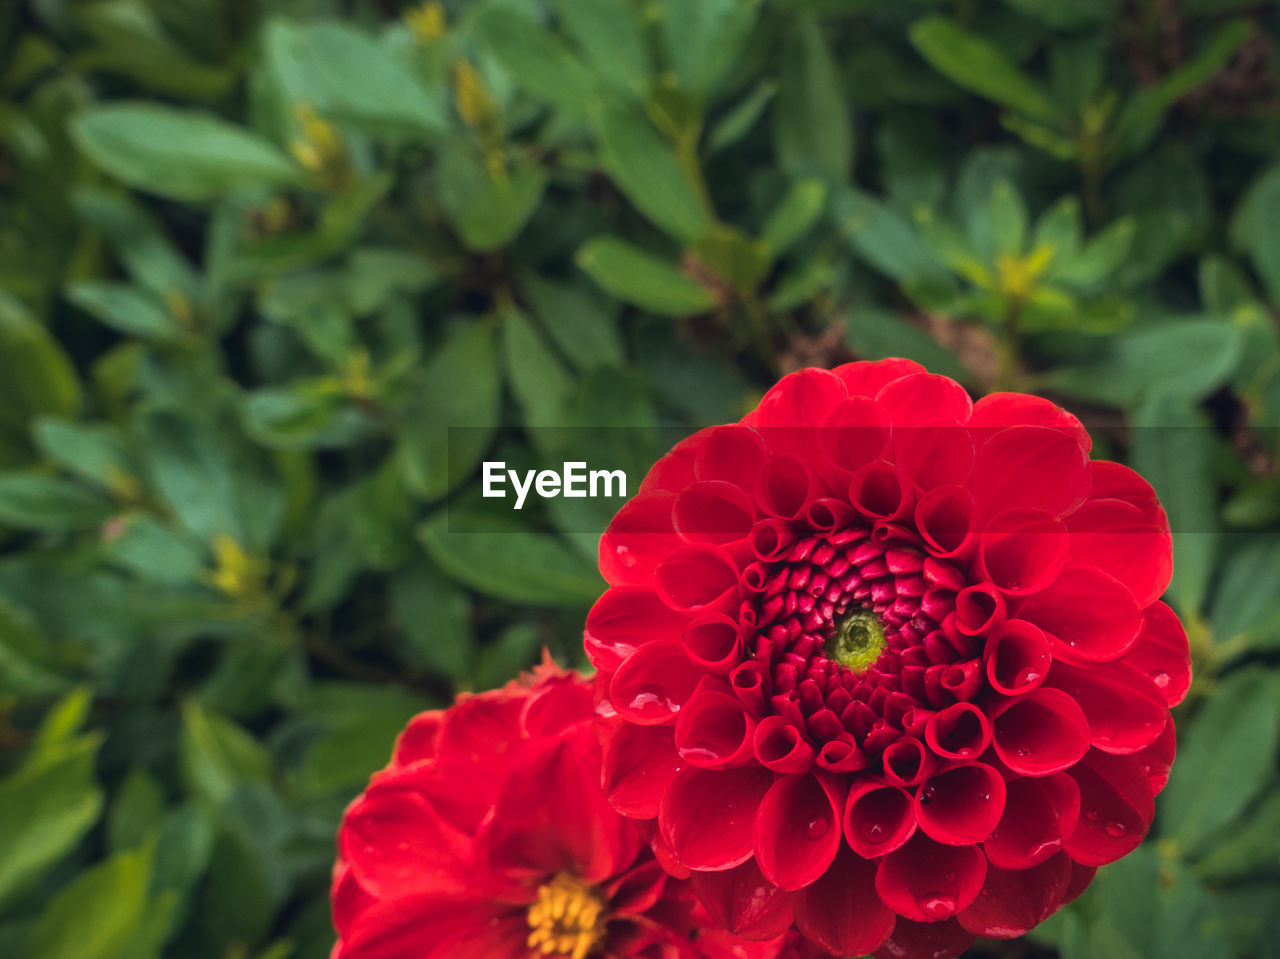 flower, petal, red, beauty in nature, flower head, nature, fragility, growth, freshness, zinnia, blooming, plant, day, green color, outdoors, focus on foreground, close-up, no people, leaf